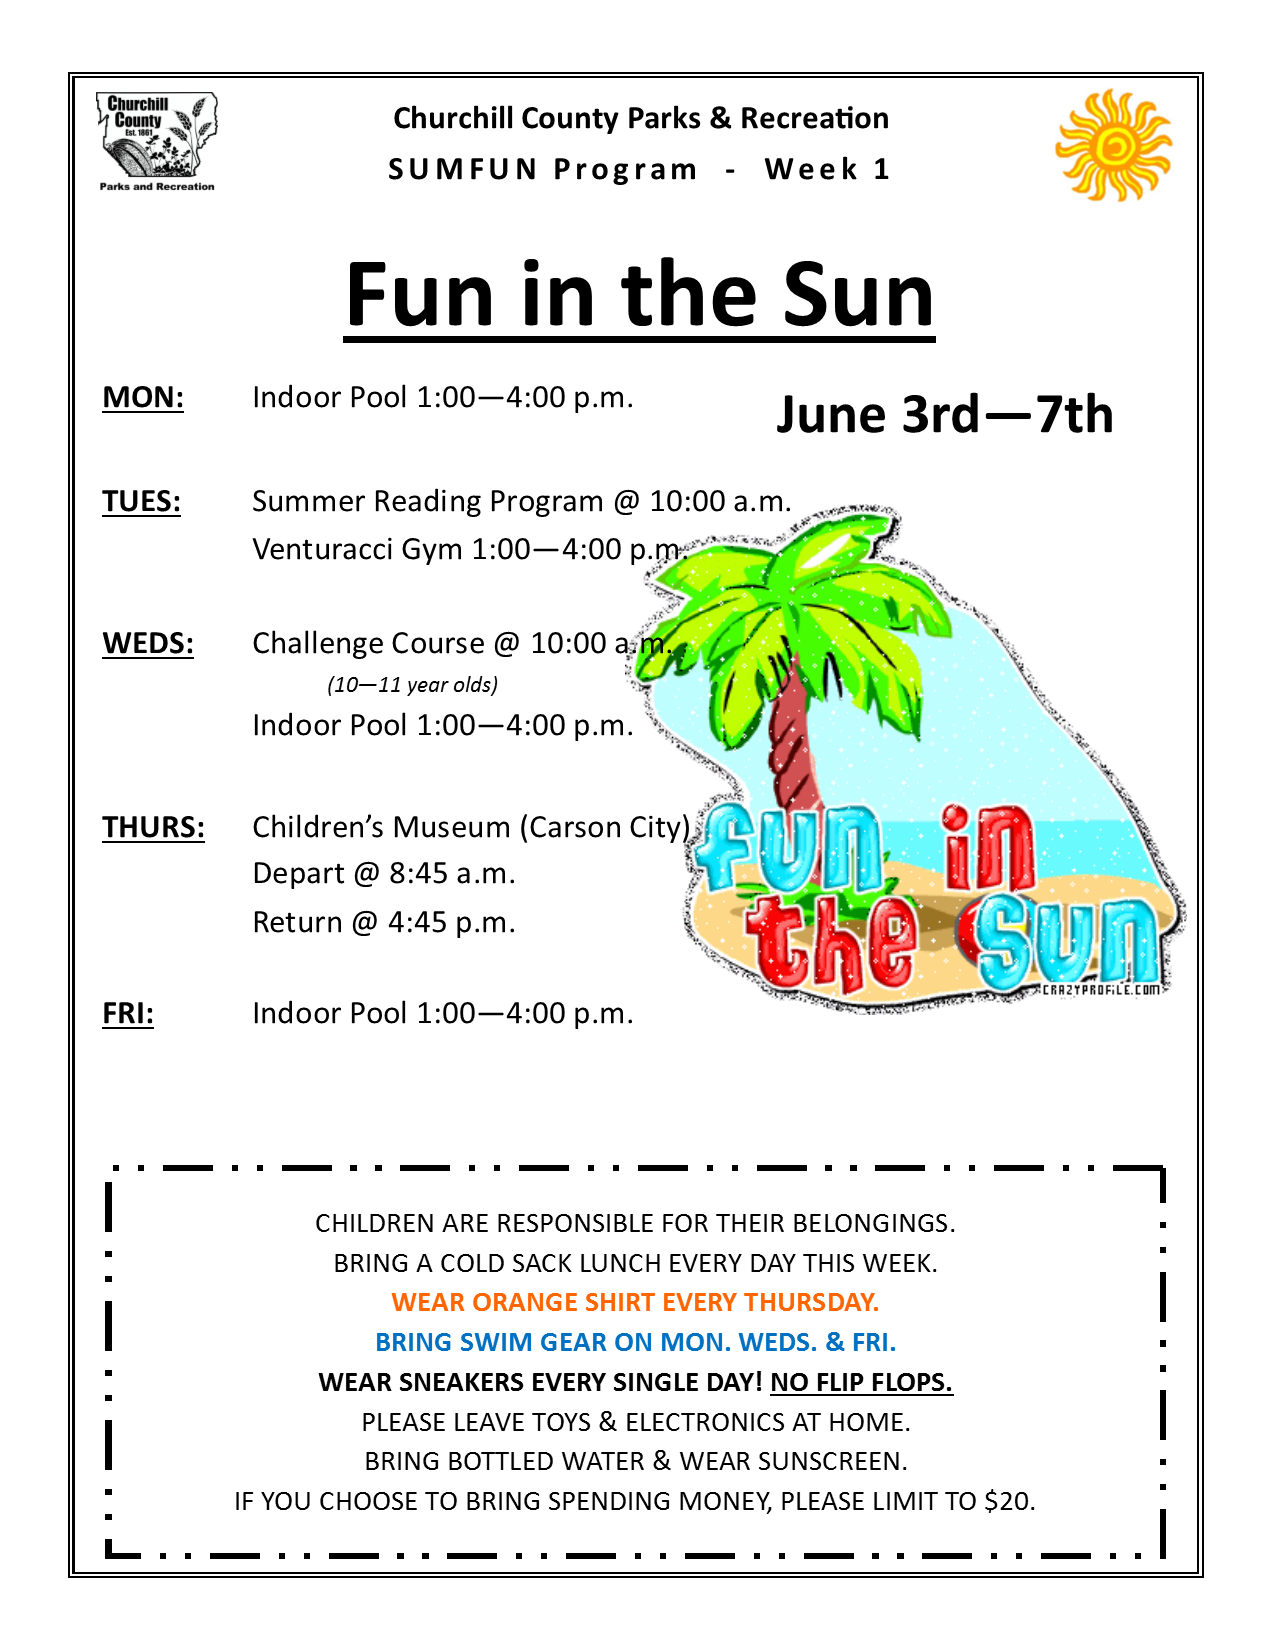 SUMFUN 2019 Flyer for Week 1